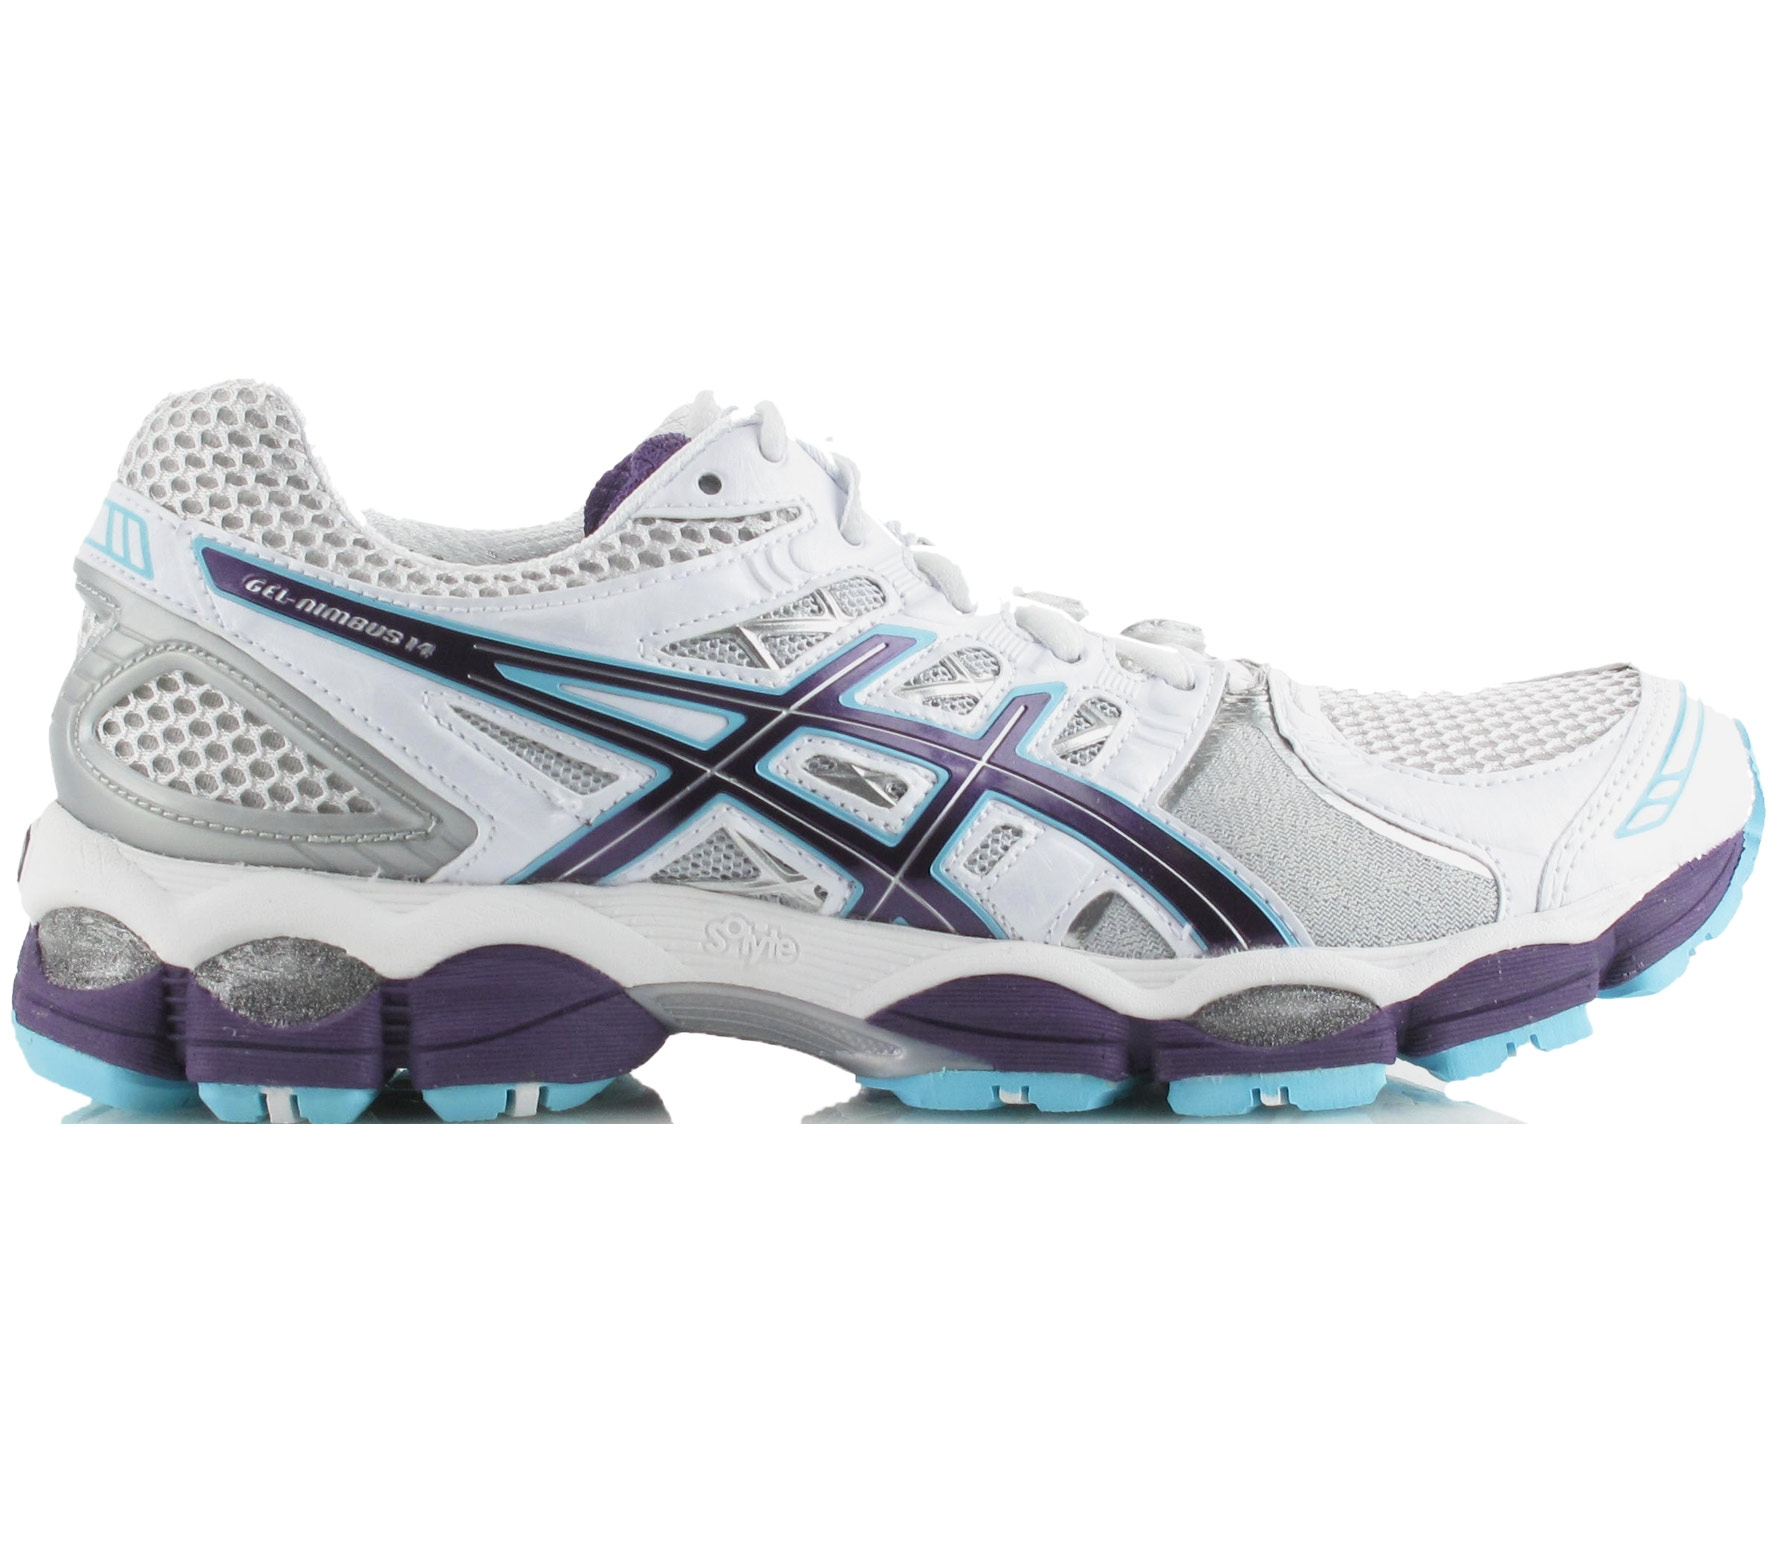 Asics - Running Shoes Women Gel-Nimbus 14 - FS13